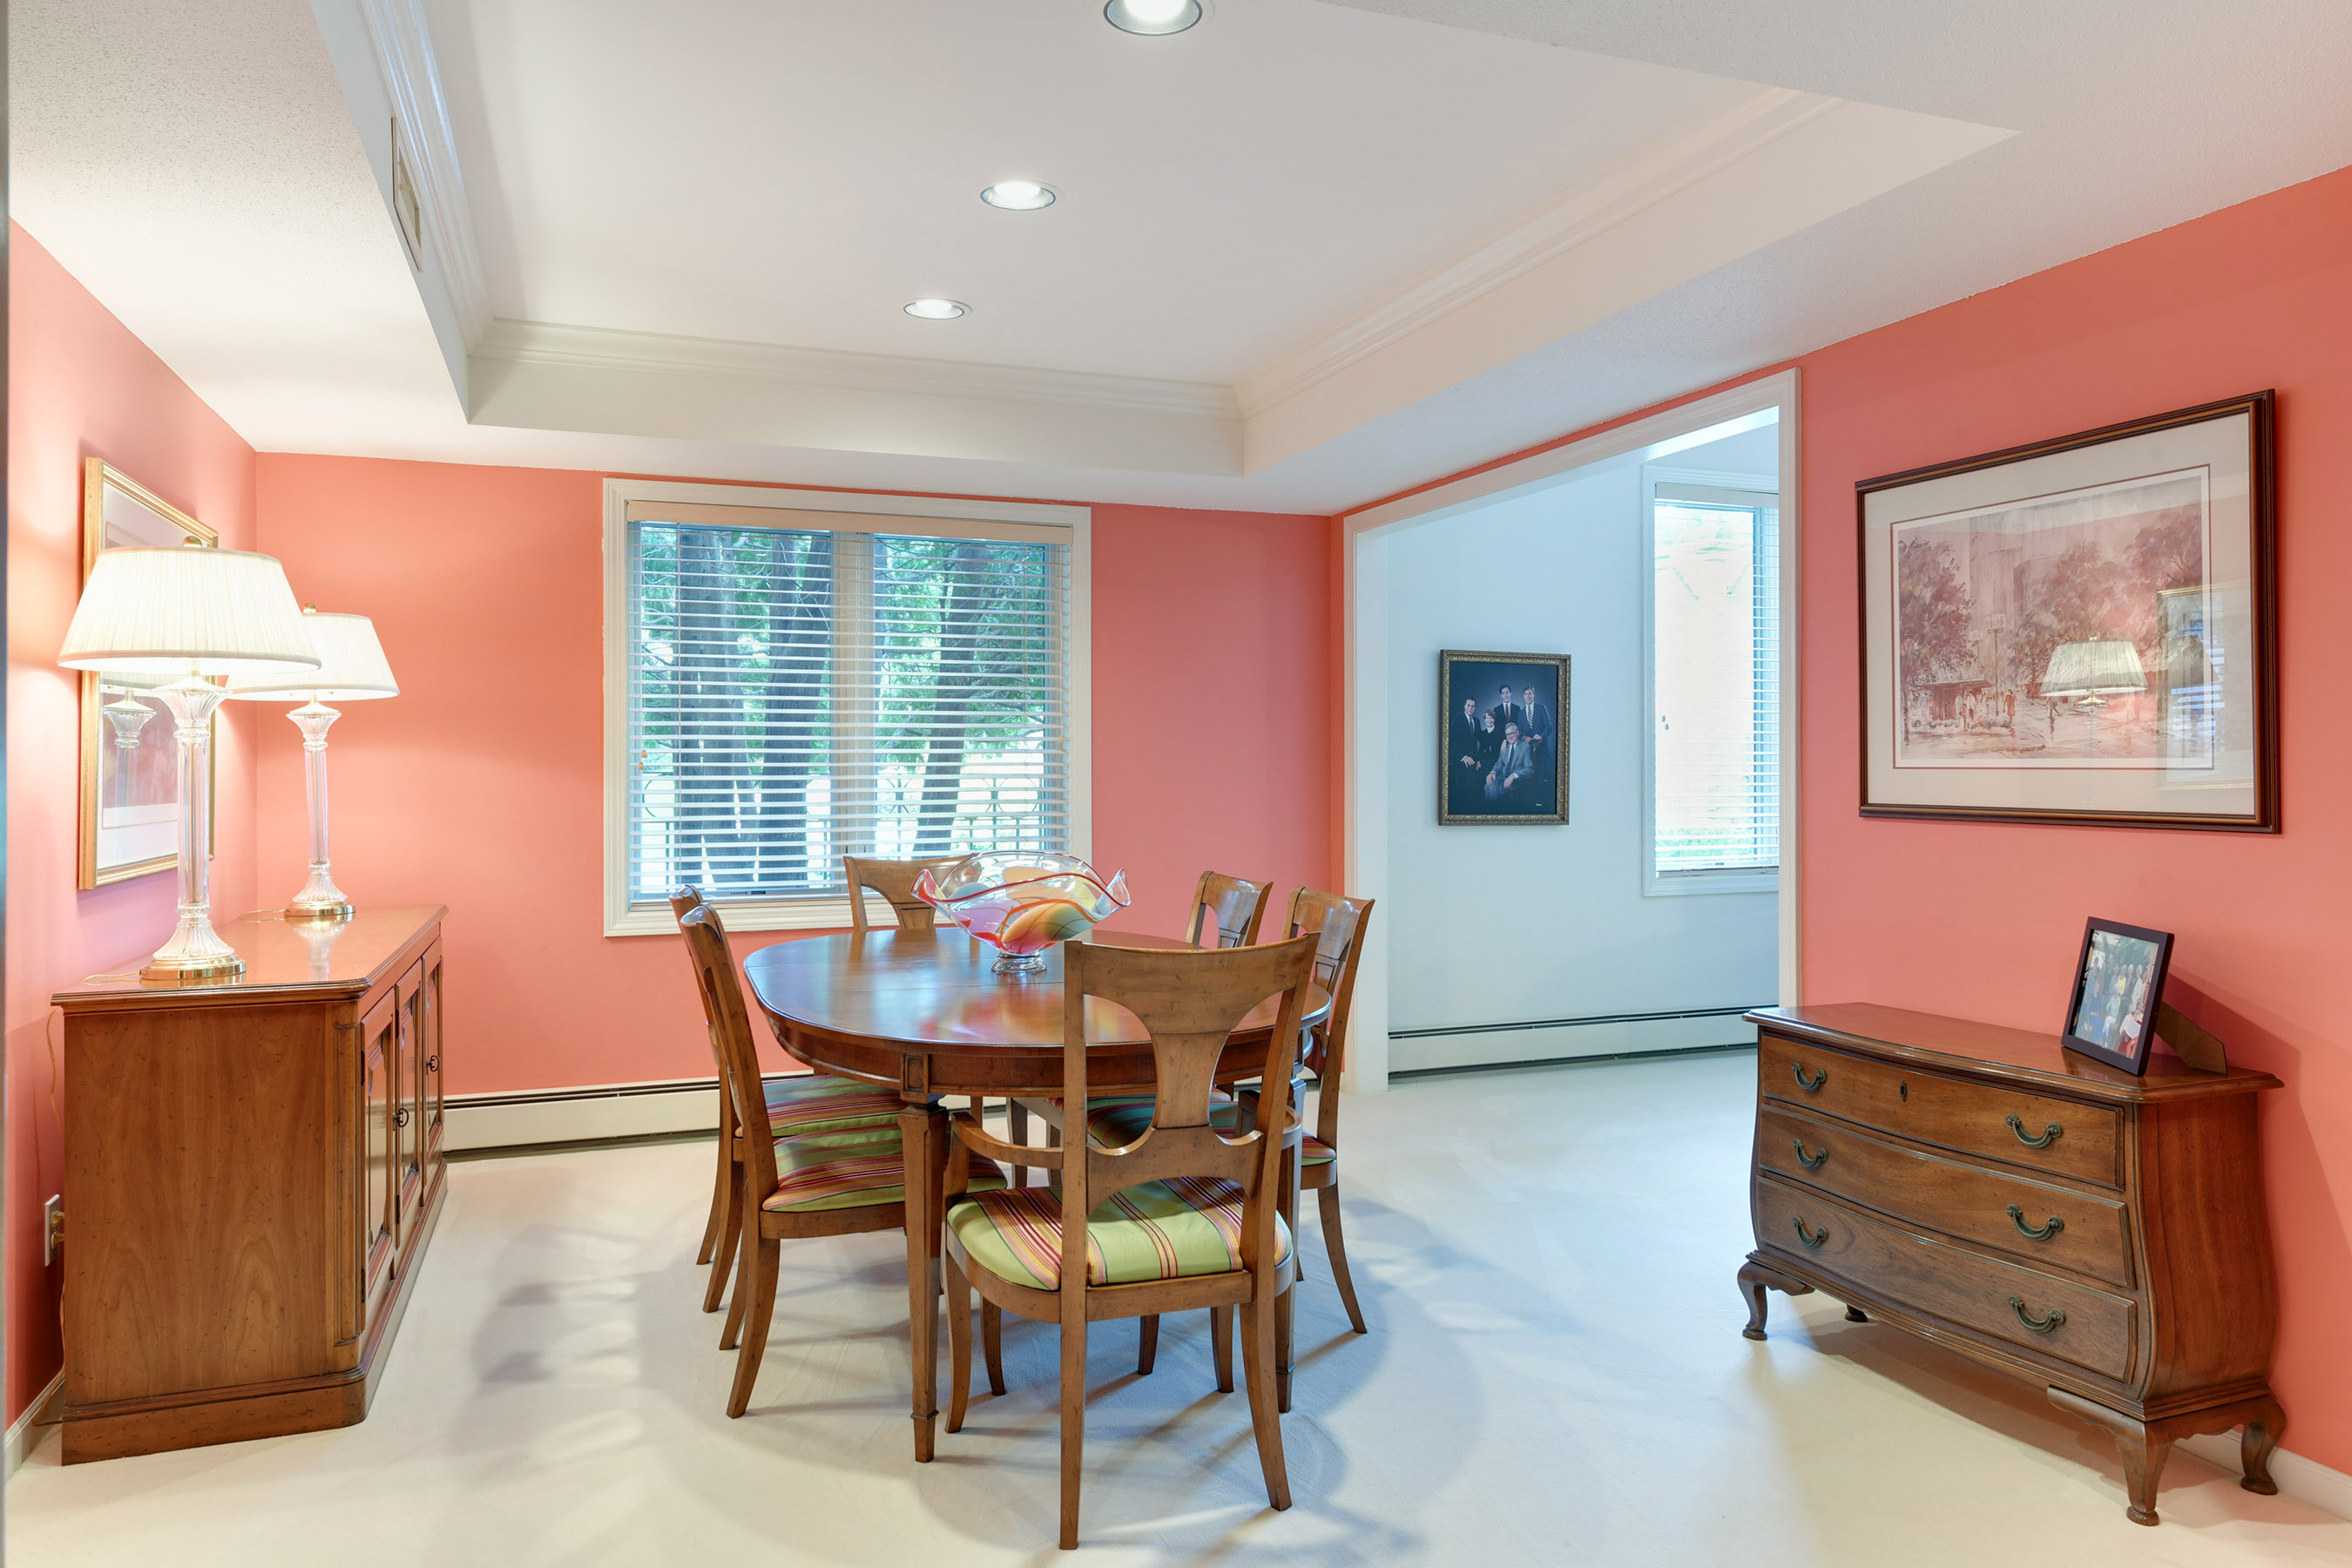 The spacious dining room has recessed lighting and crown molding